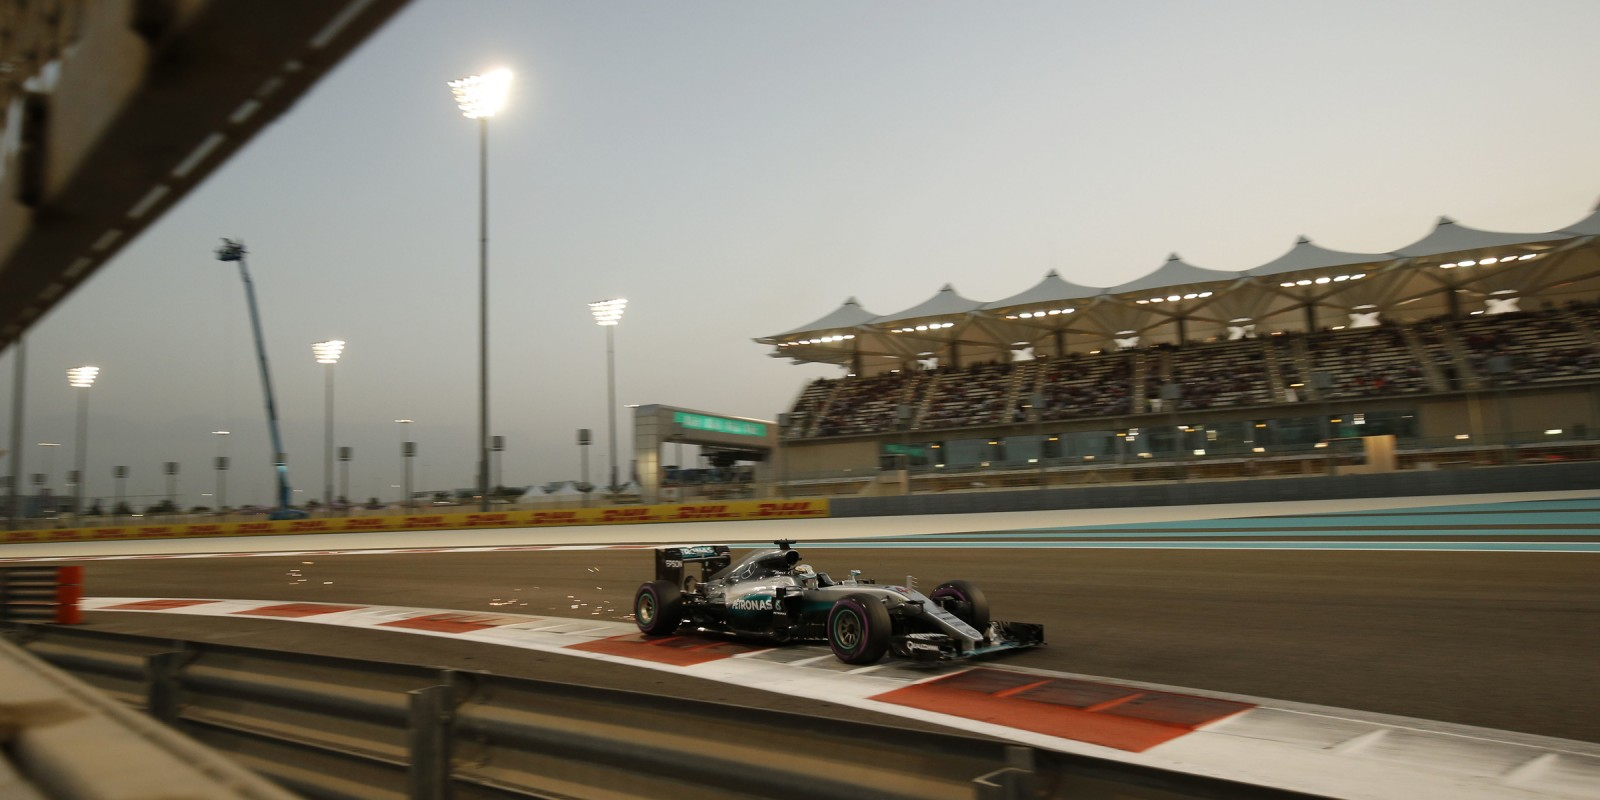 Saturday / Qualifying images from the 2016 Abu Dhabi Grand Prix